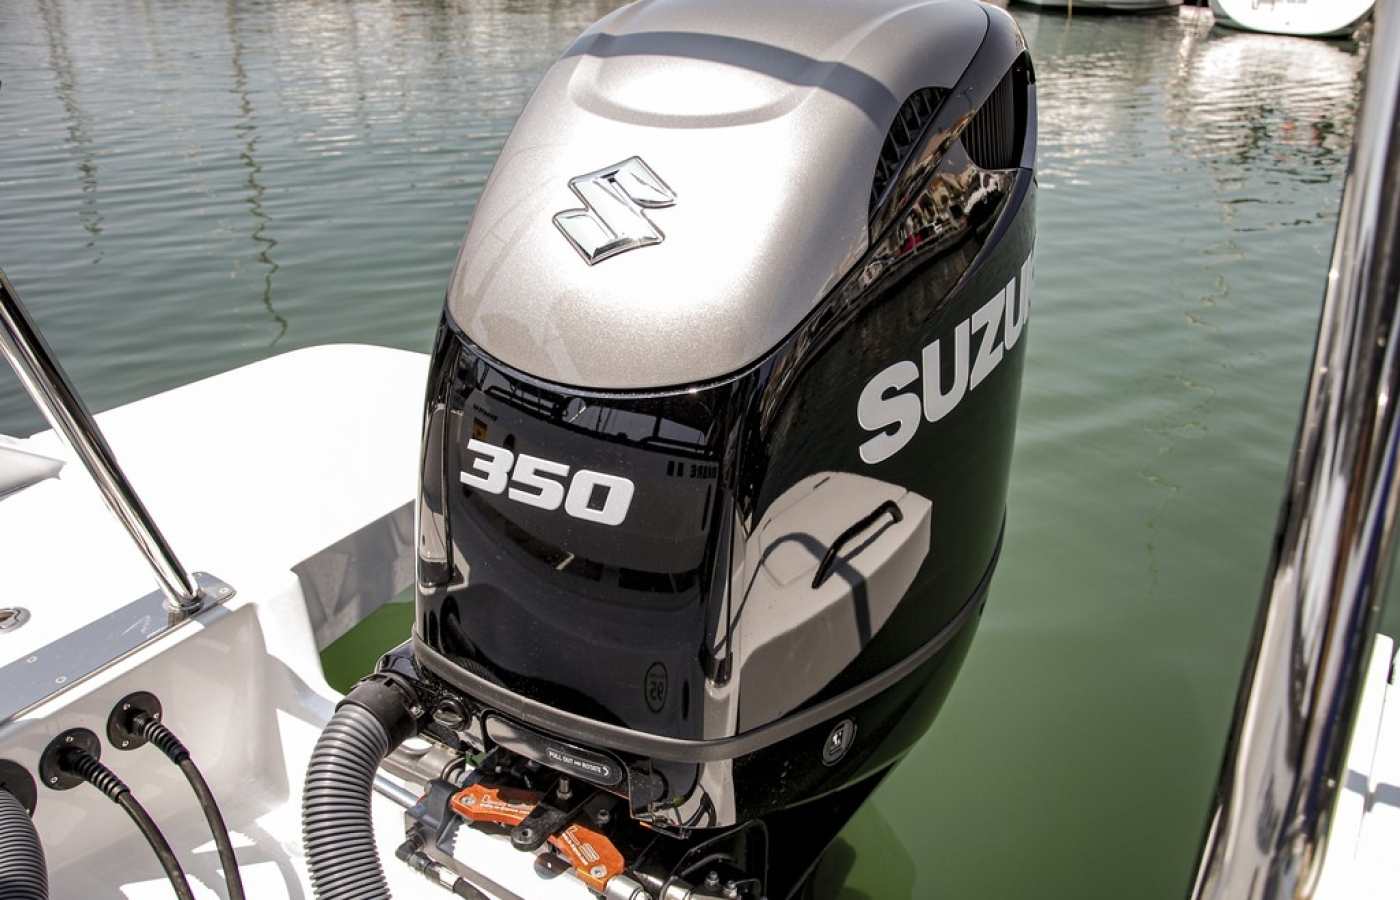 Engine of the Boat